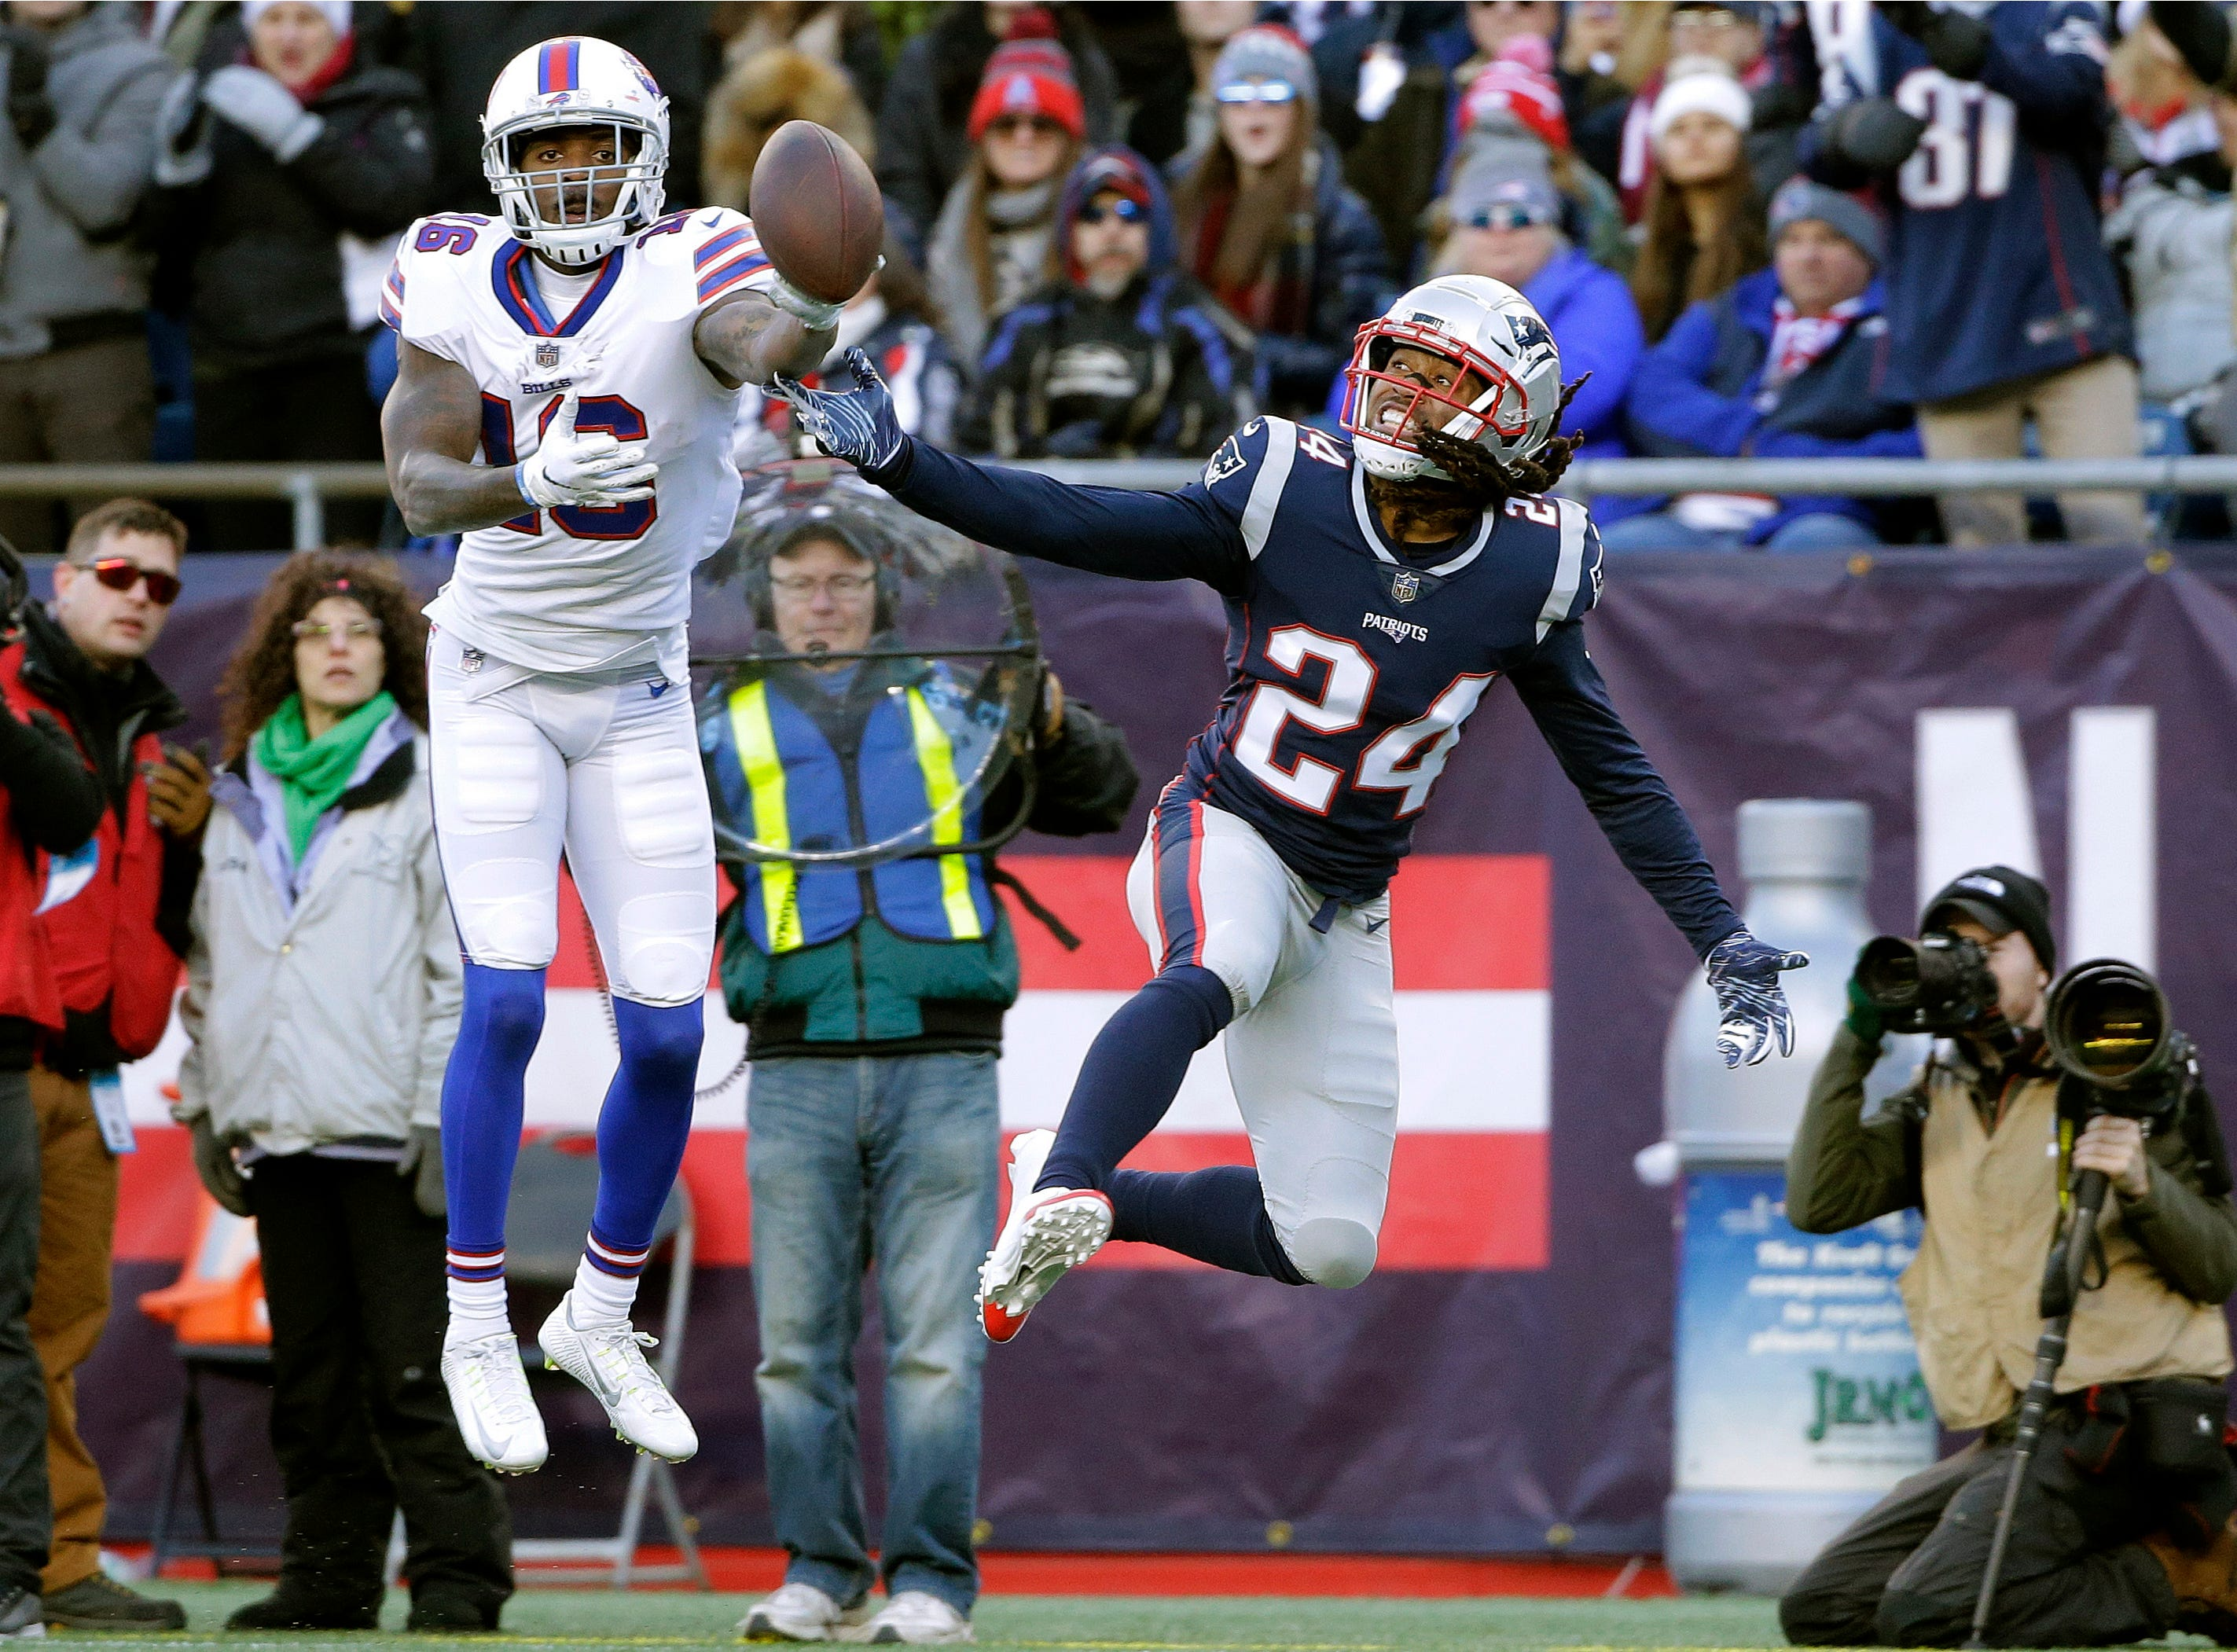 New England Patriots defensive back Stephon Gilmore, front, breaks up a pass in the end zone intended for Buffalo Bills wide receiver Robert Foster, rear, during the first half of an NFL football game, Sunday, Dec. 23, 2018, in Foxborough, Mass. (AP Photo/Steven Senne)